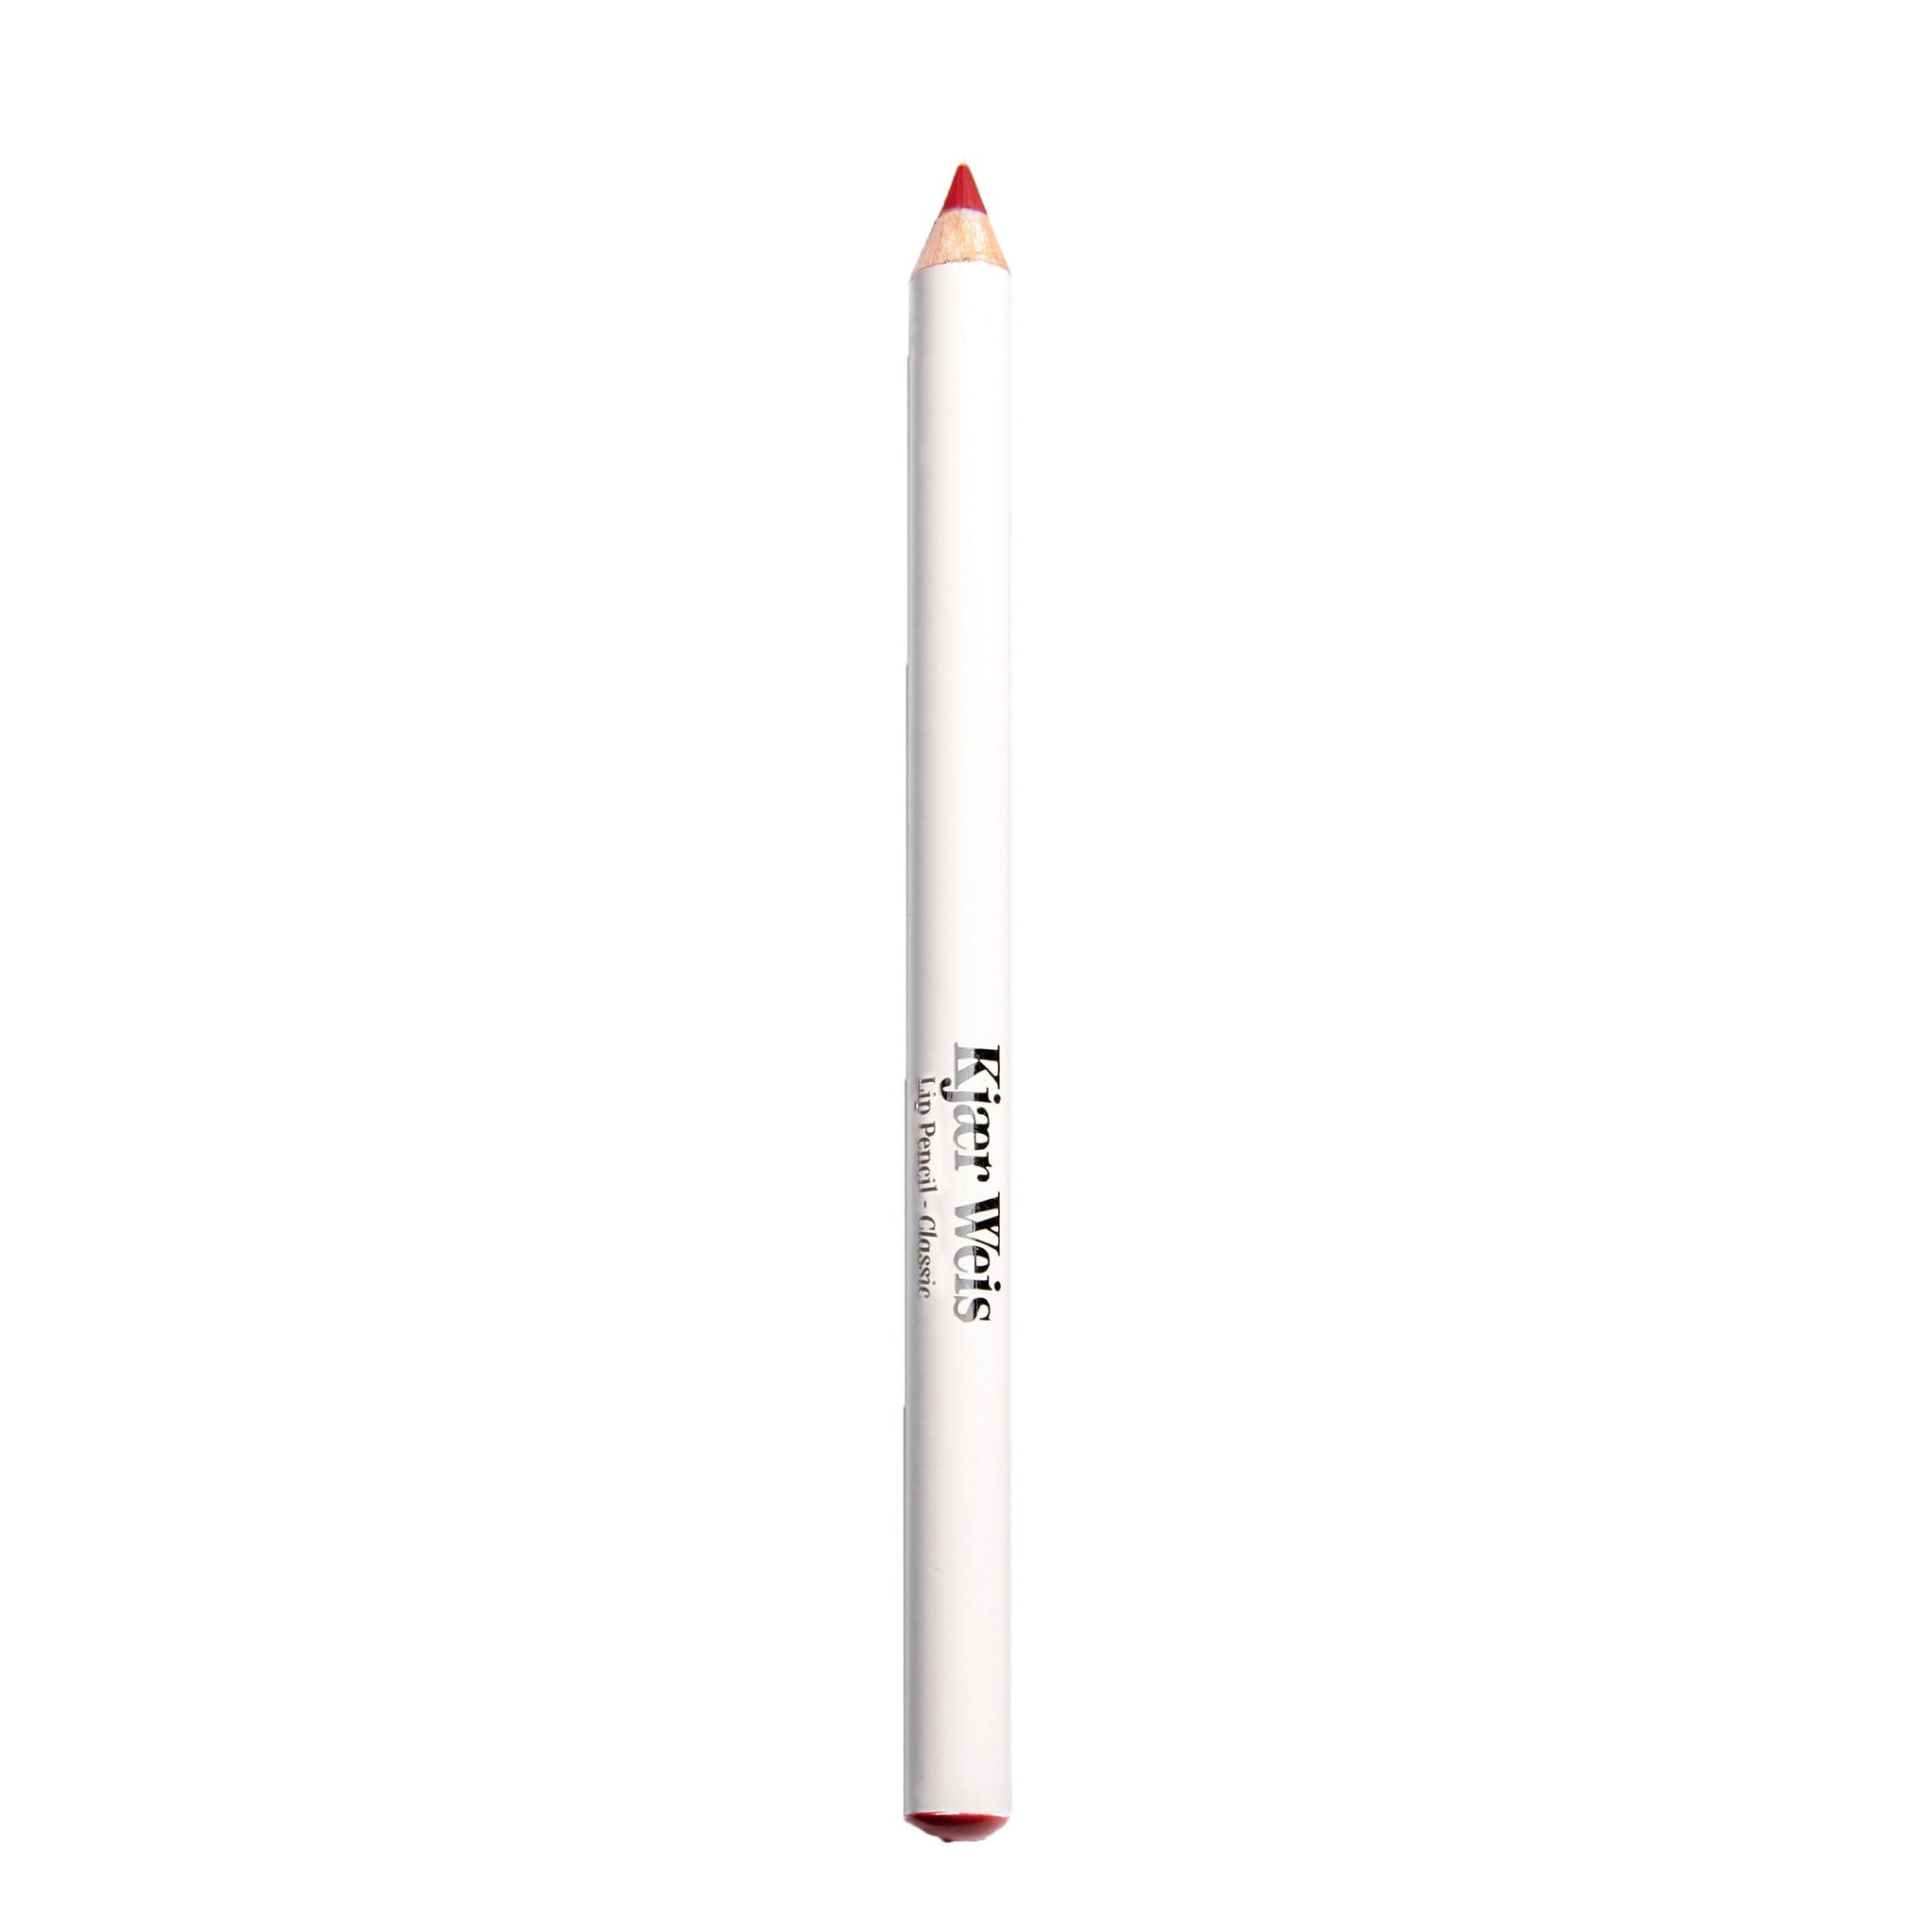 819869020032 - Kjaer Weis Lip Pencil